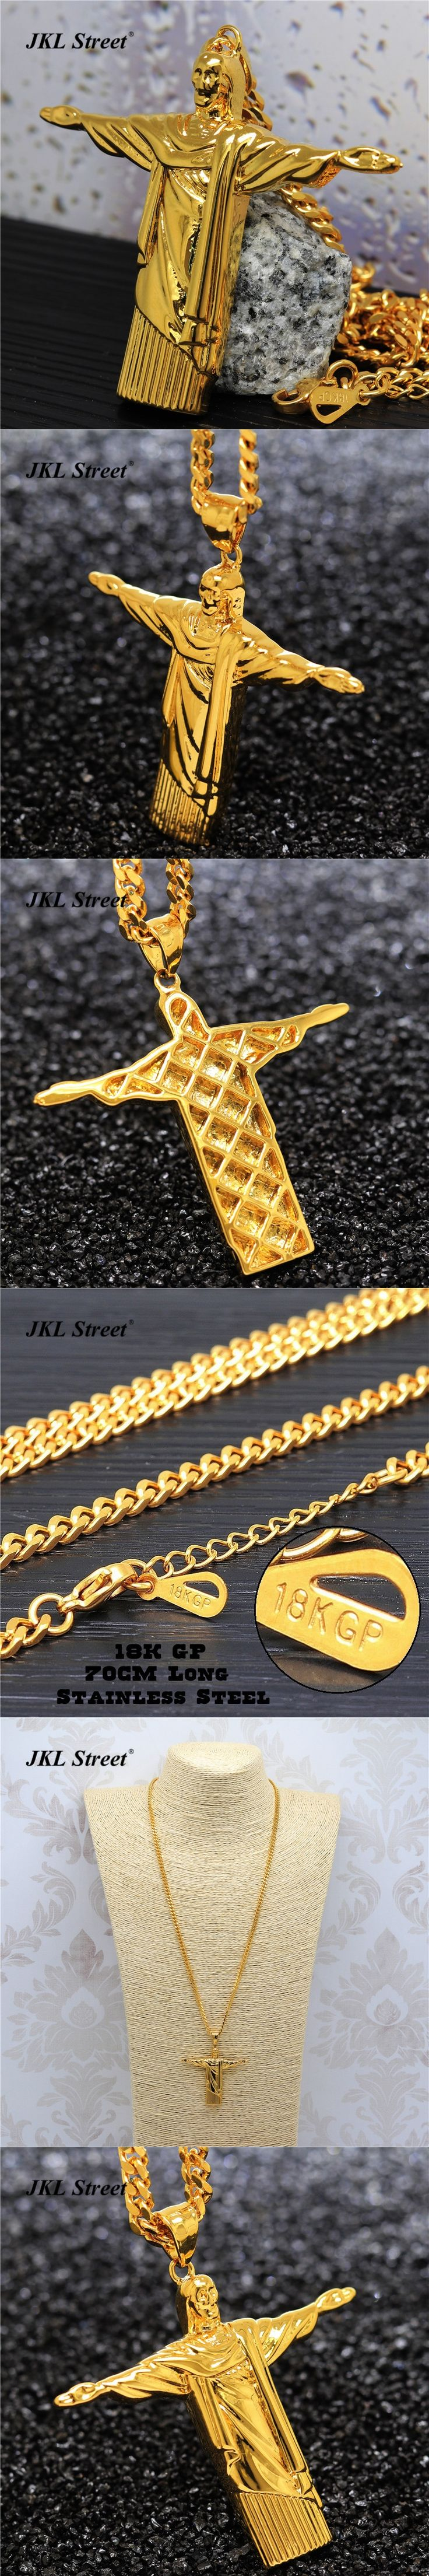 "Mens Stainless Steel Gold Christ The Redeemer Jesus Piece Pendant Hip Hop 27.5"" Cuban Chain Necklace JL2109"